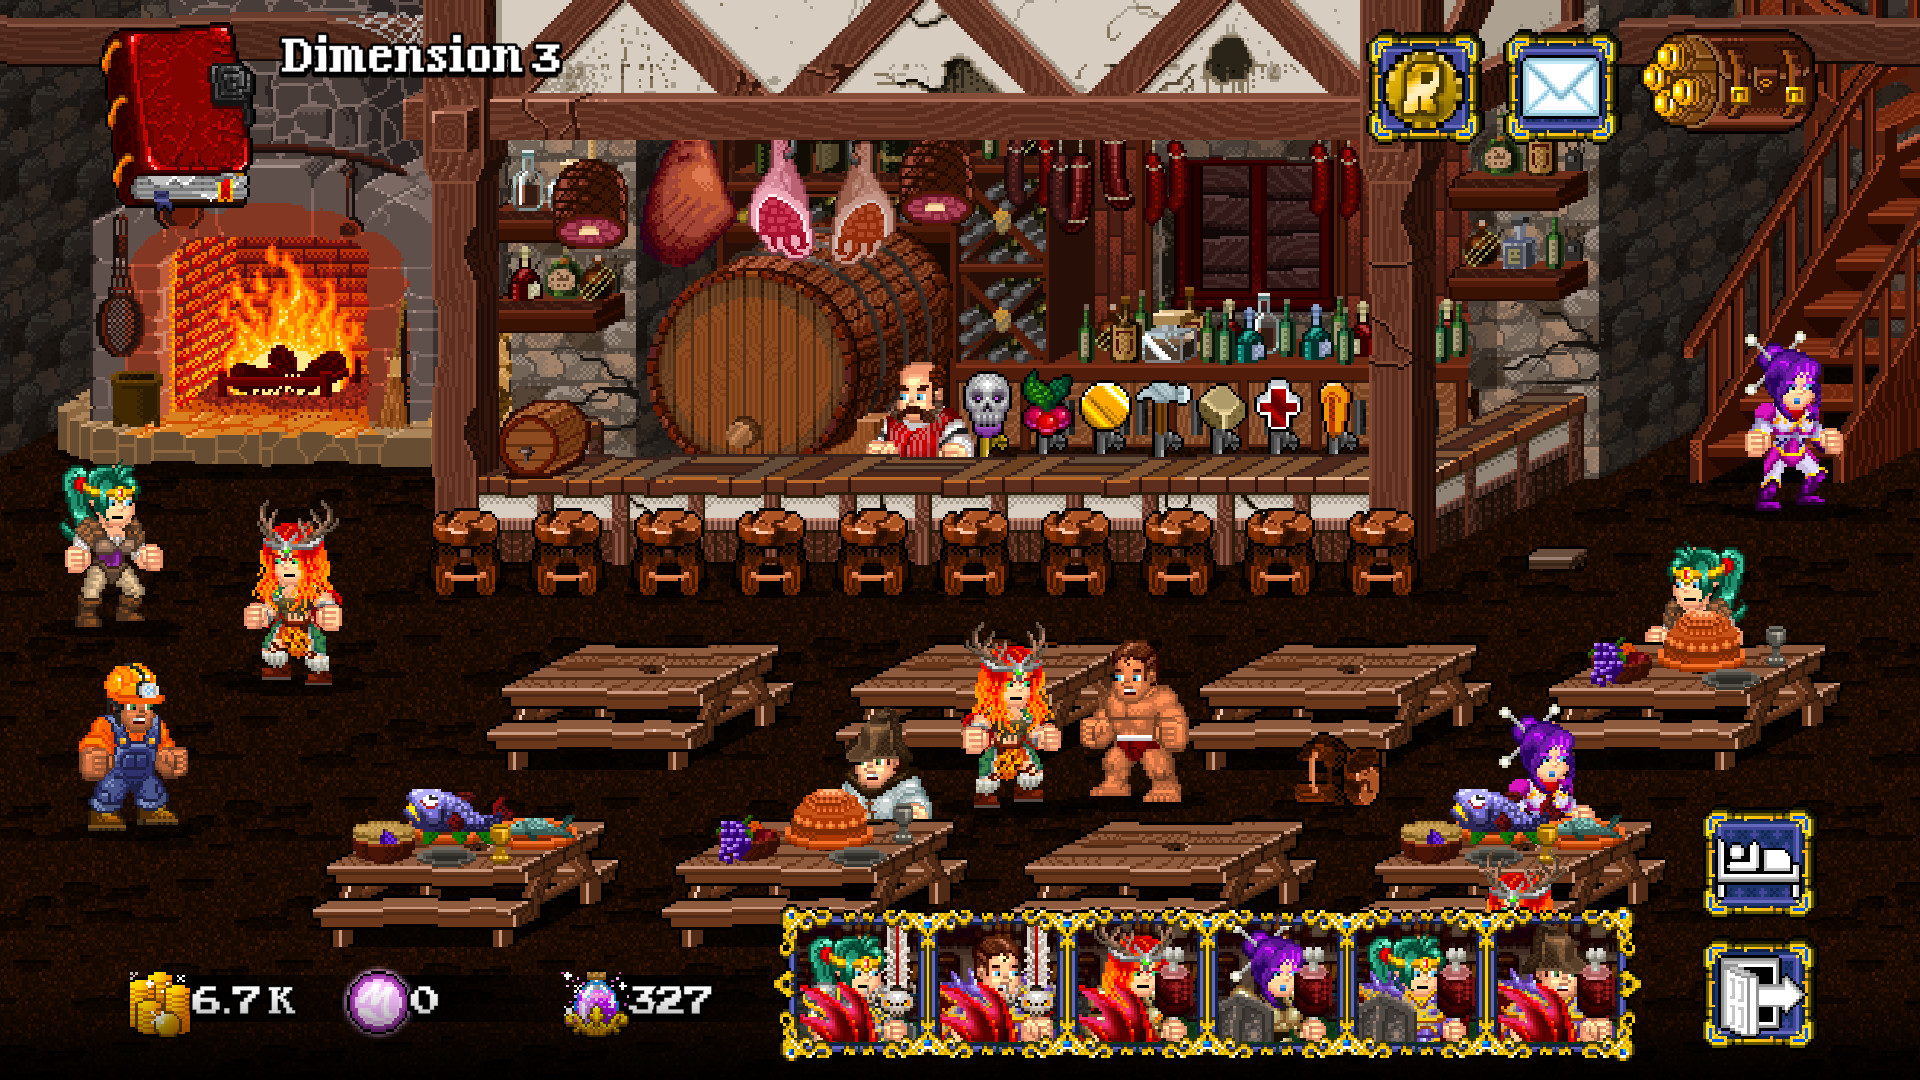 Soda Dungeon 2 on Steam